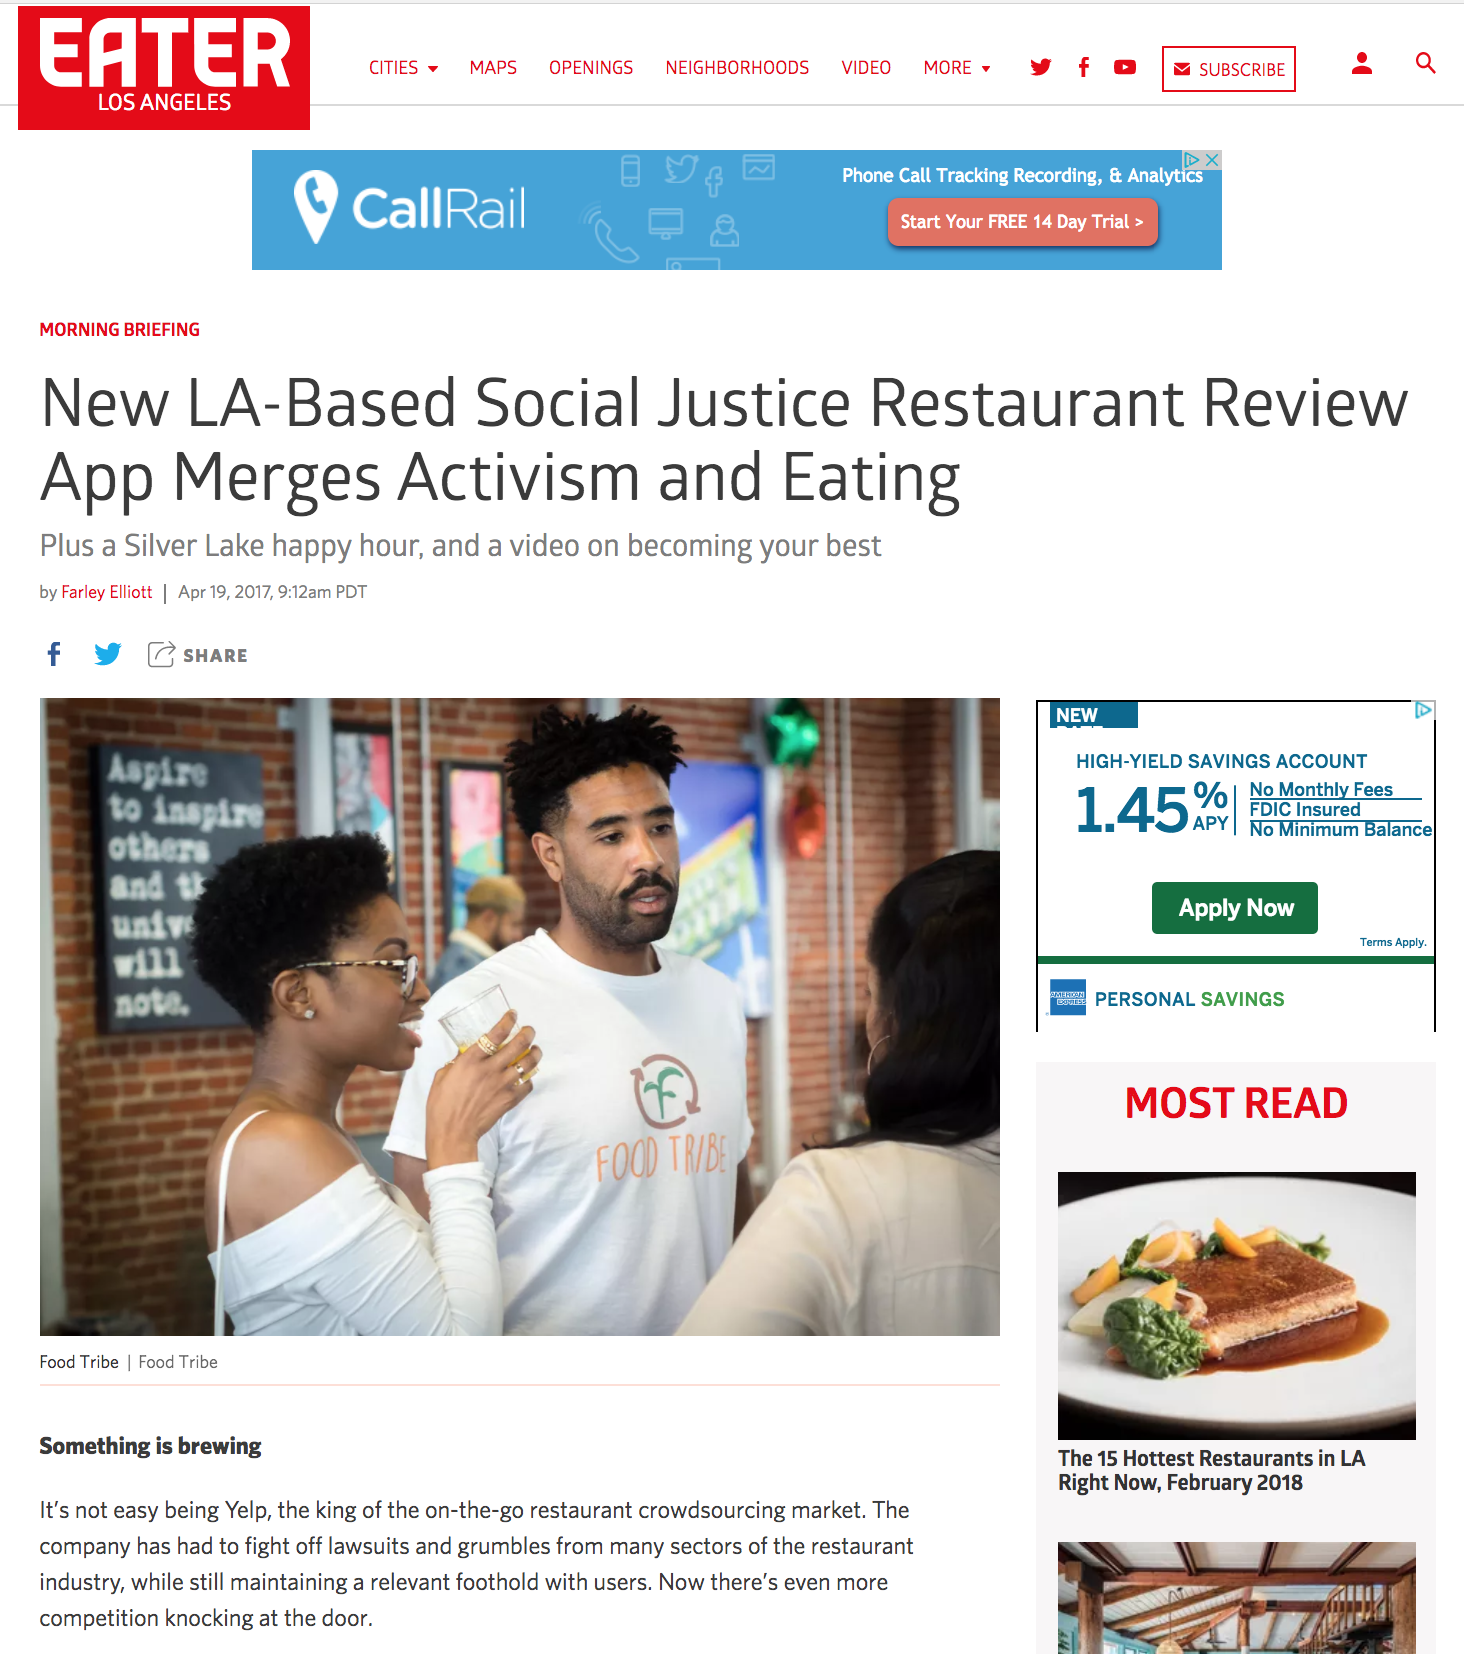 Check out Food Tribe's feature in food news site + blog Eater LA. - Founded in 2015 as a Food Blog, Food Tribe has evolved into so much more.In 2017 we raised 80% of our crowdfunding goal on platform Indiegogo.Our #JoinTheTribe: Foodies Feeding Foodies was a campaign we launched in order to raise the funds we need in order to build a socially conscious restaurant review platform.